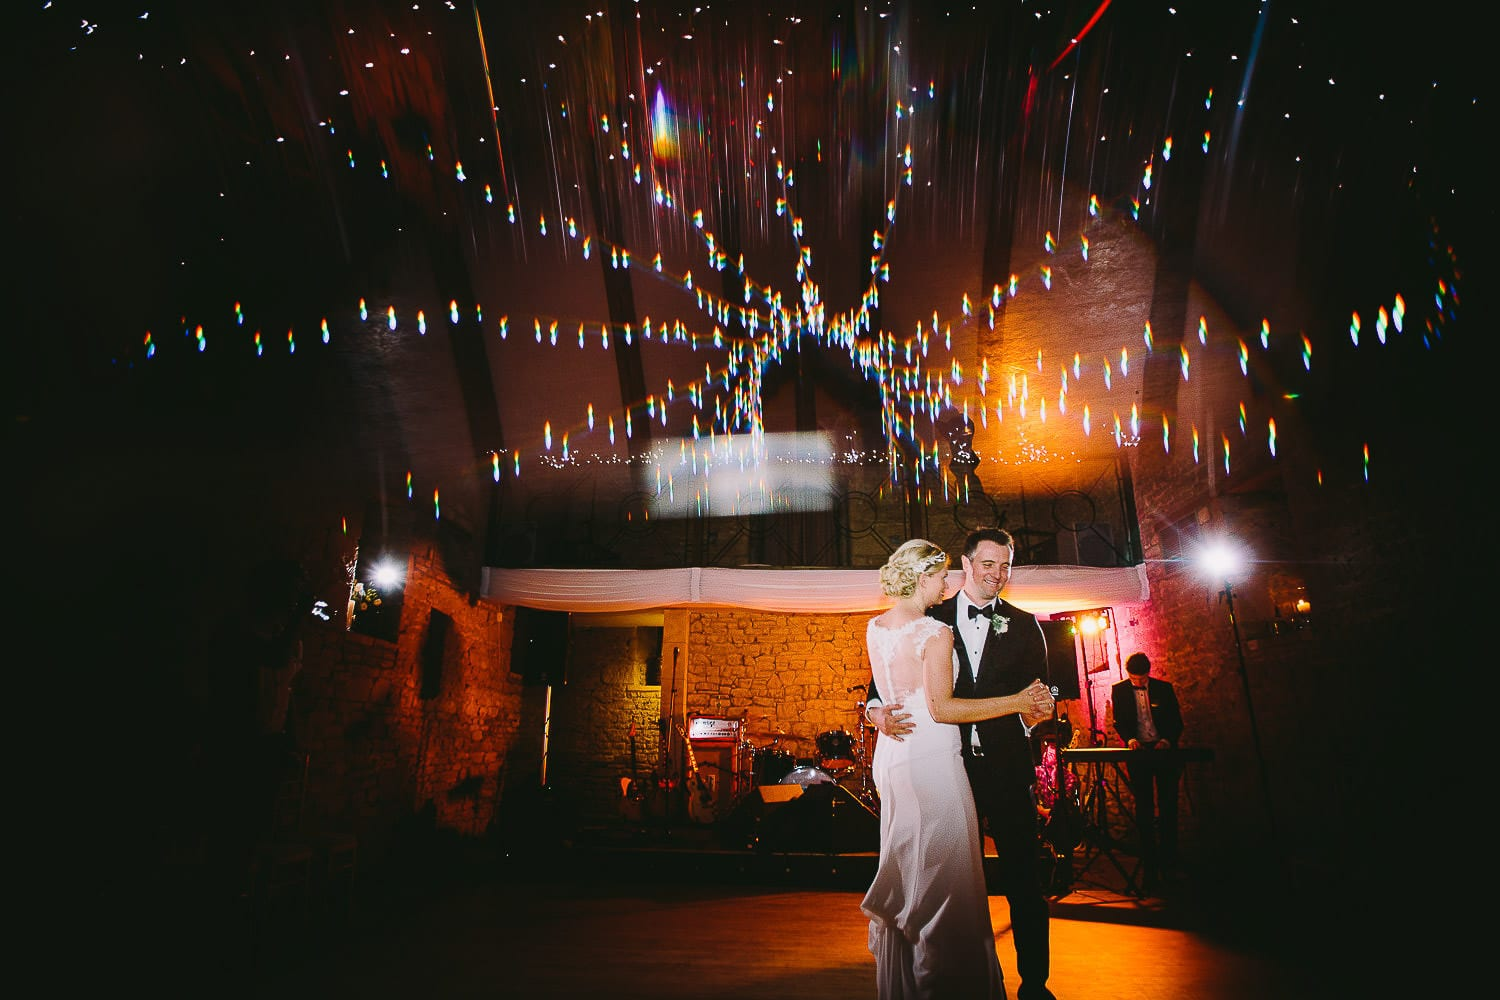 Bride and grooms first dance with band behind them